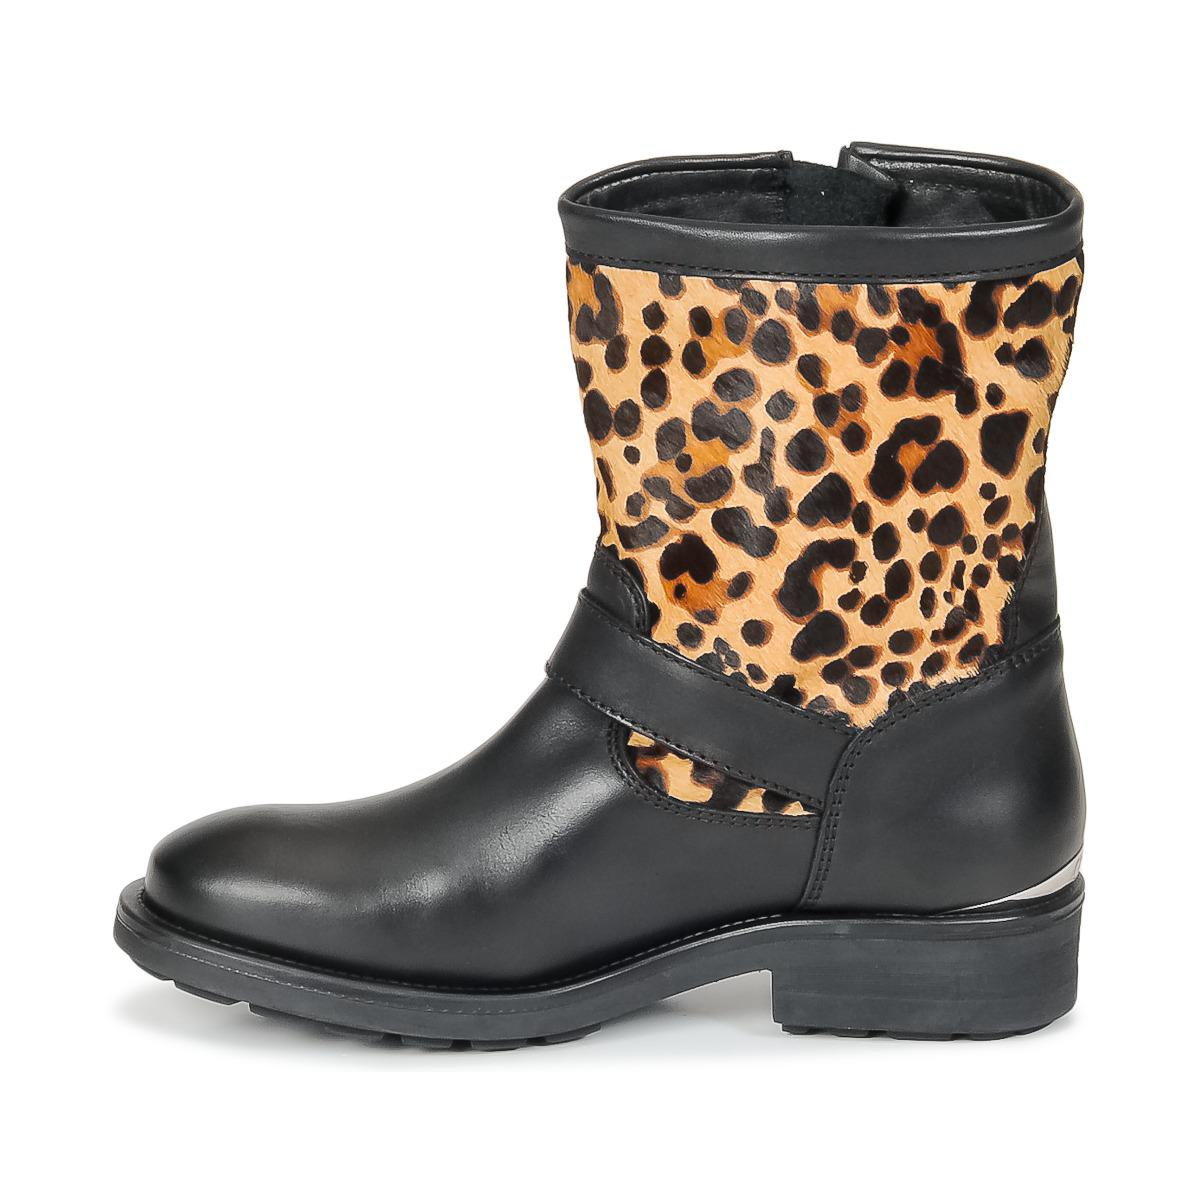 Guess Leather Lolla Women's Mid Boots In Brown